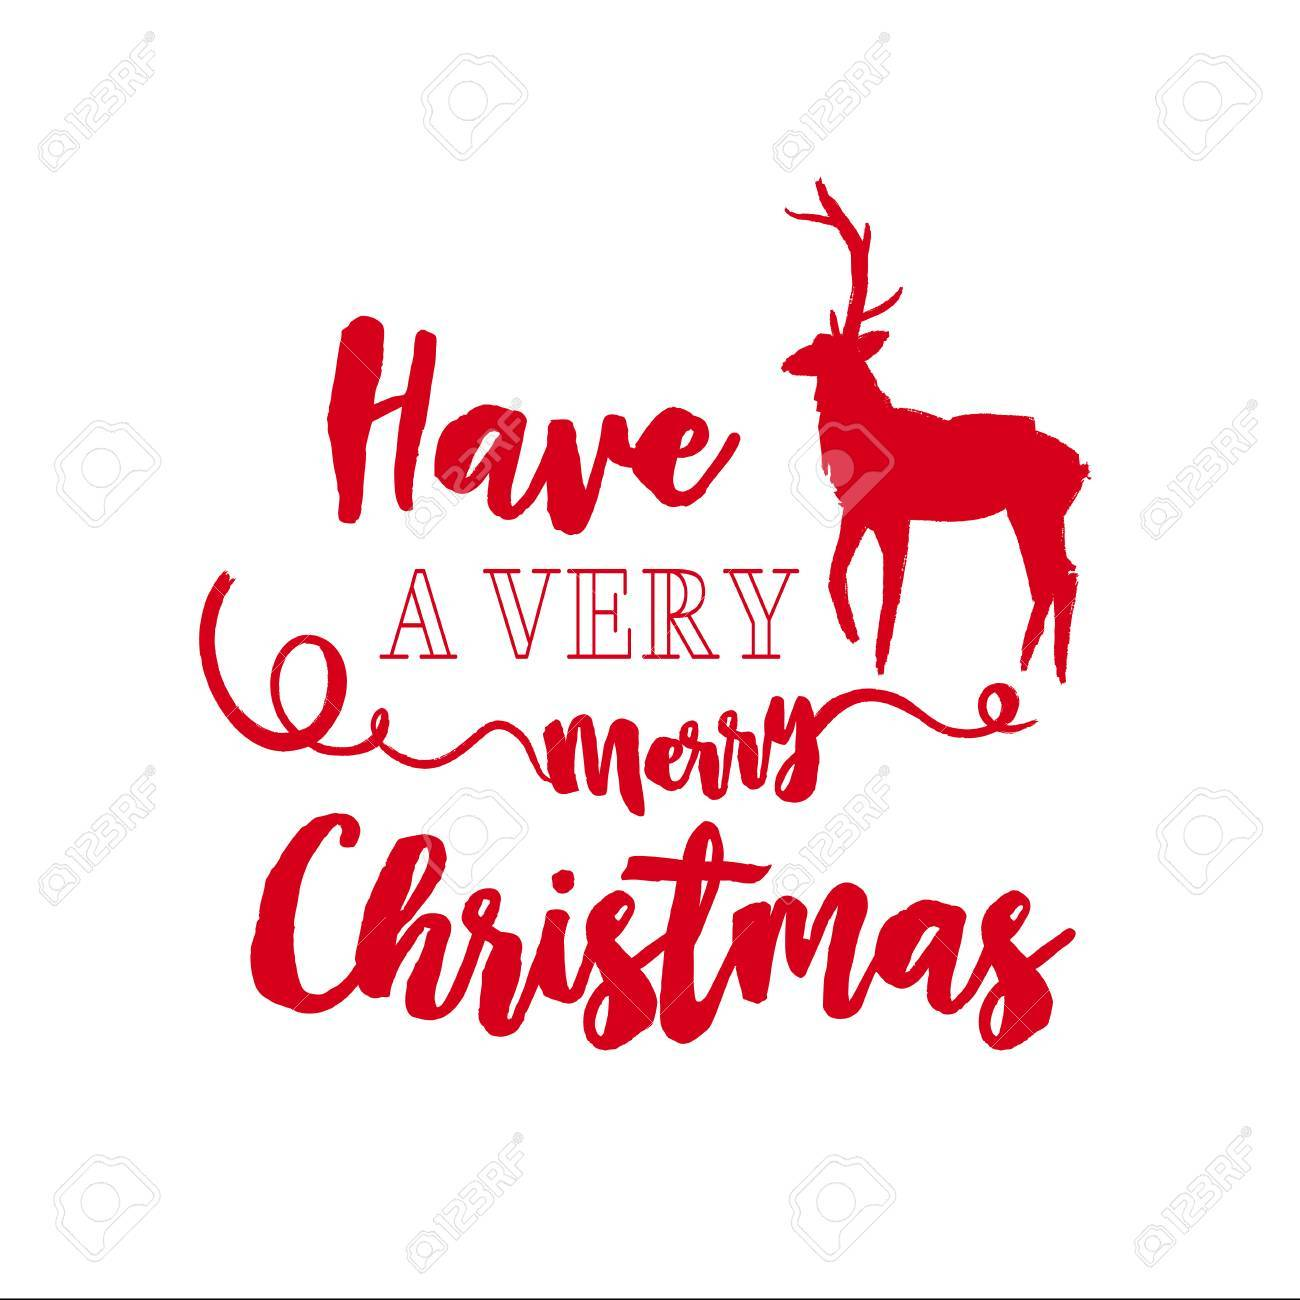 Etonnant Merry Christmas Deer Calligraphy Quote, Lettering Text Design For Holiday  Season. Creative Red Typography